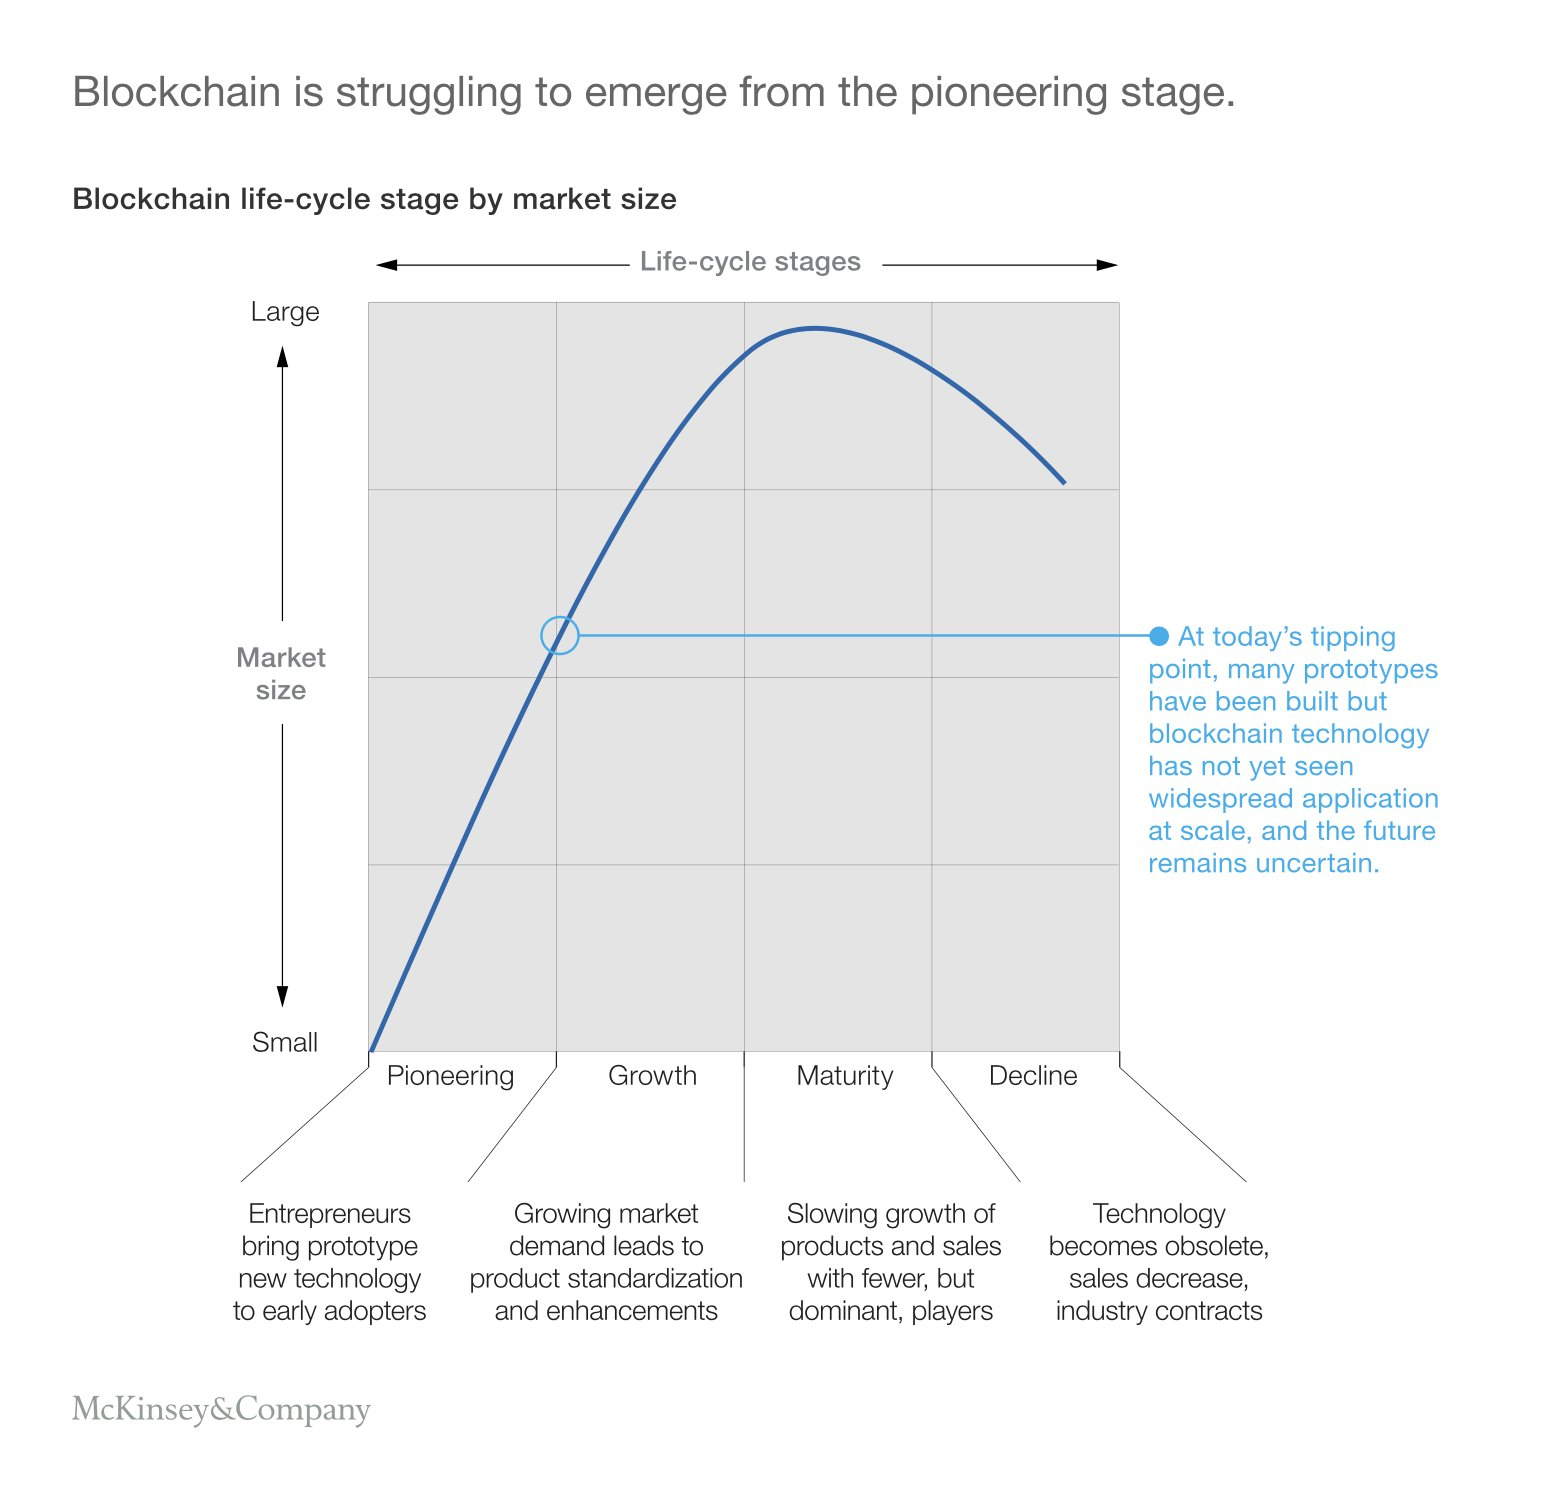 Blockchain is struggling to emerge from pioneering age. Still no killer app except crypto